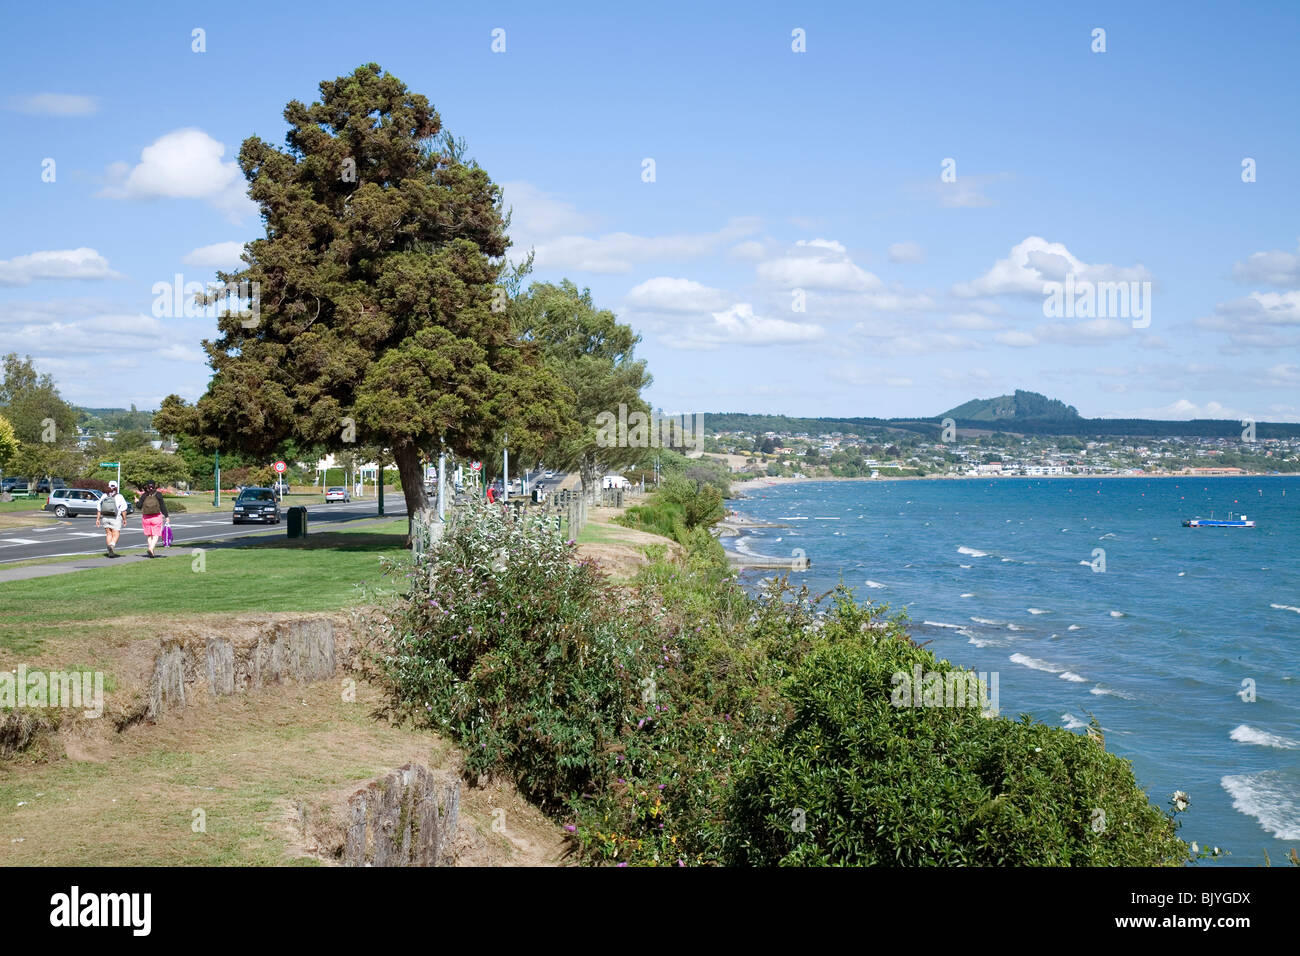 The neatly manicured and visitor friendly town of Taupo nestles on the shores of volcanically formed Lake Taupo - Stock Image